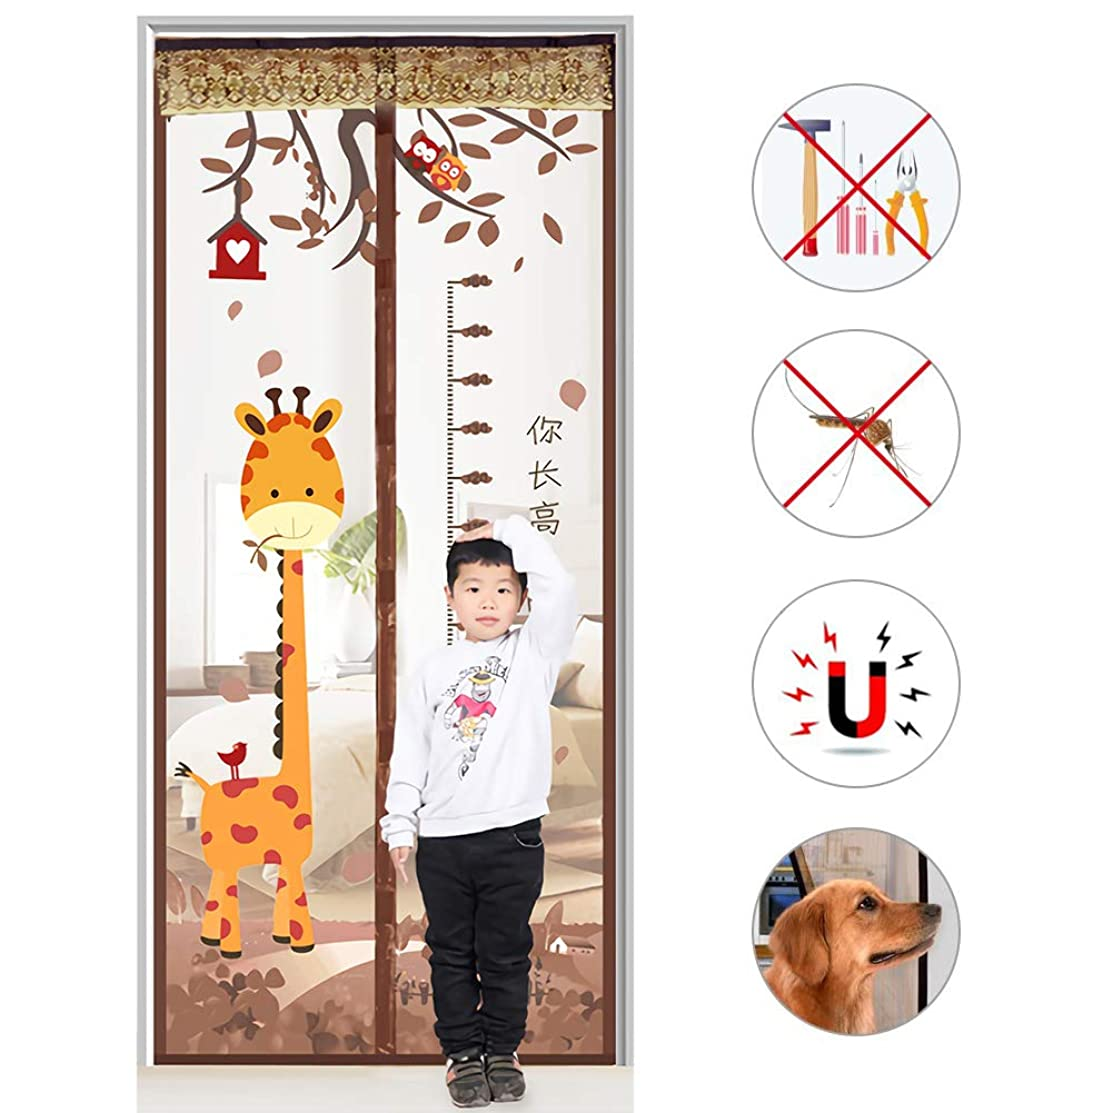 PeiQiH Magnetic Screen Door Super Tight Self Closing, Anti Mosquito Full Frame Hook & Loop Magnets Heavy Duty Mesh Curtain French Door-Coffee 95x210cm(37x83in)